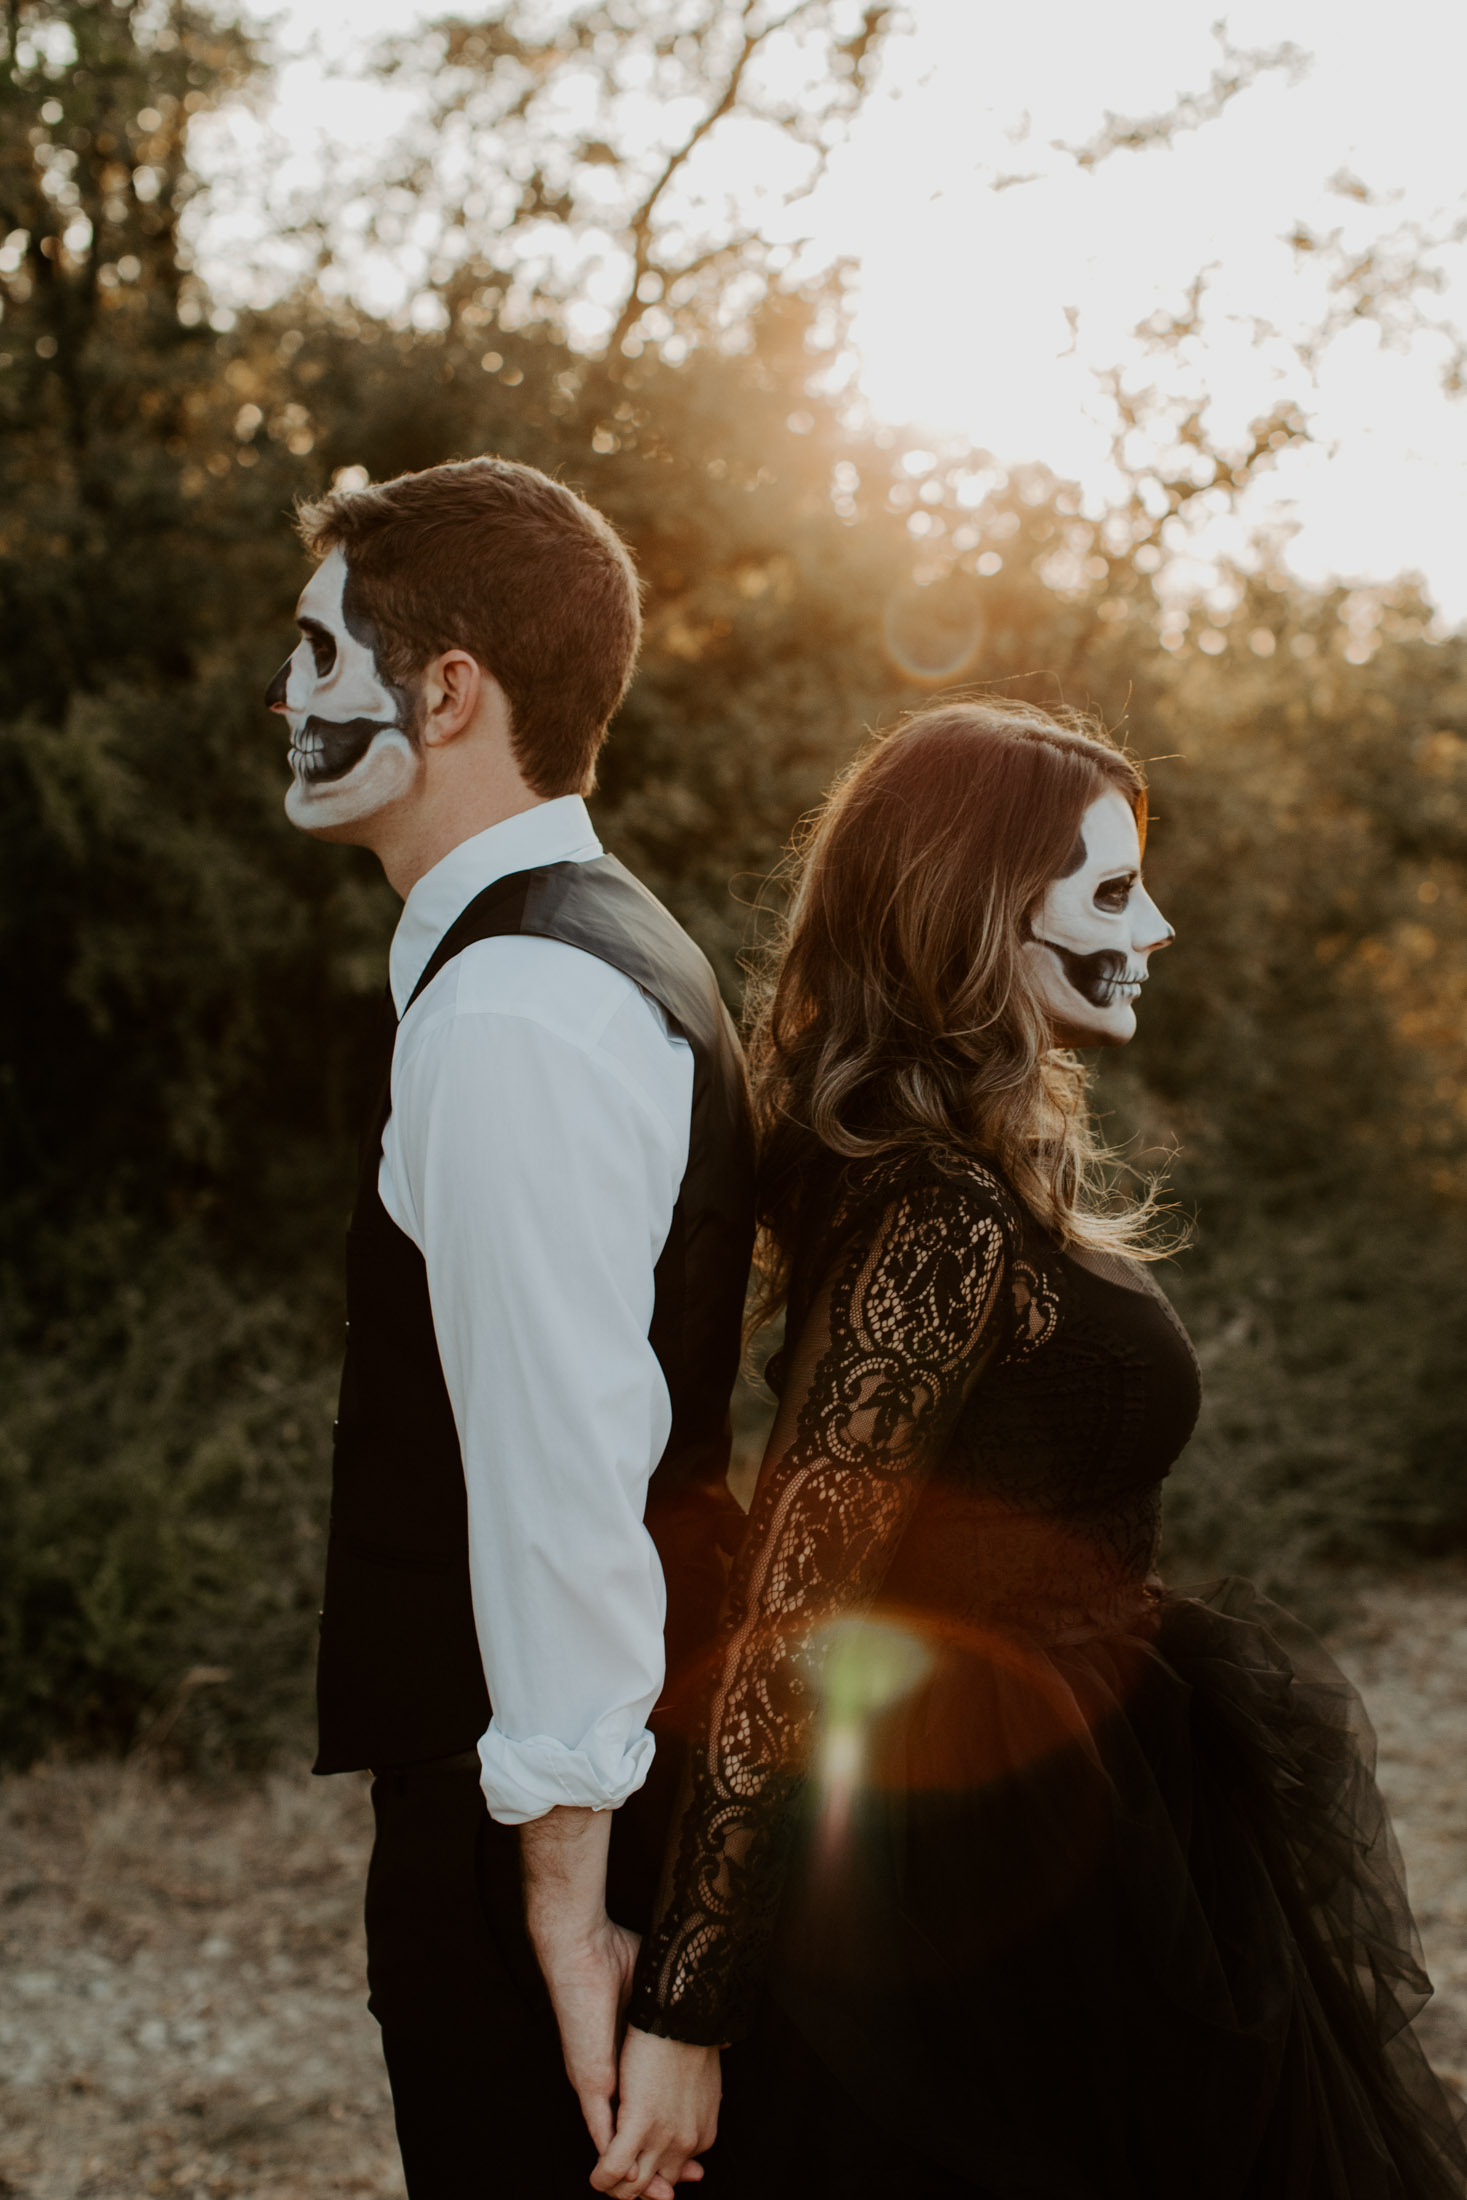 unique and scary black and white bride and groom halloween wedding photo